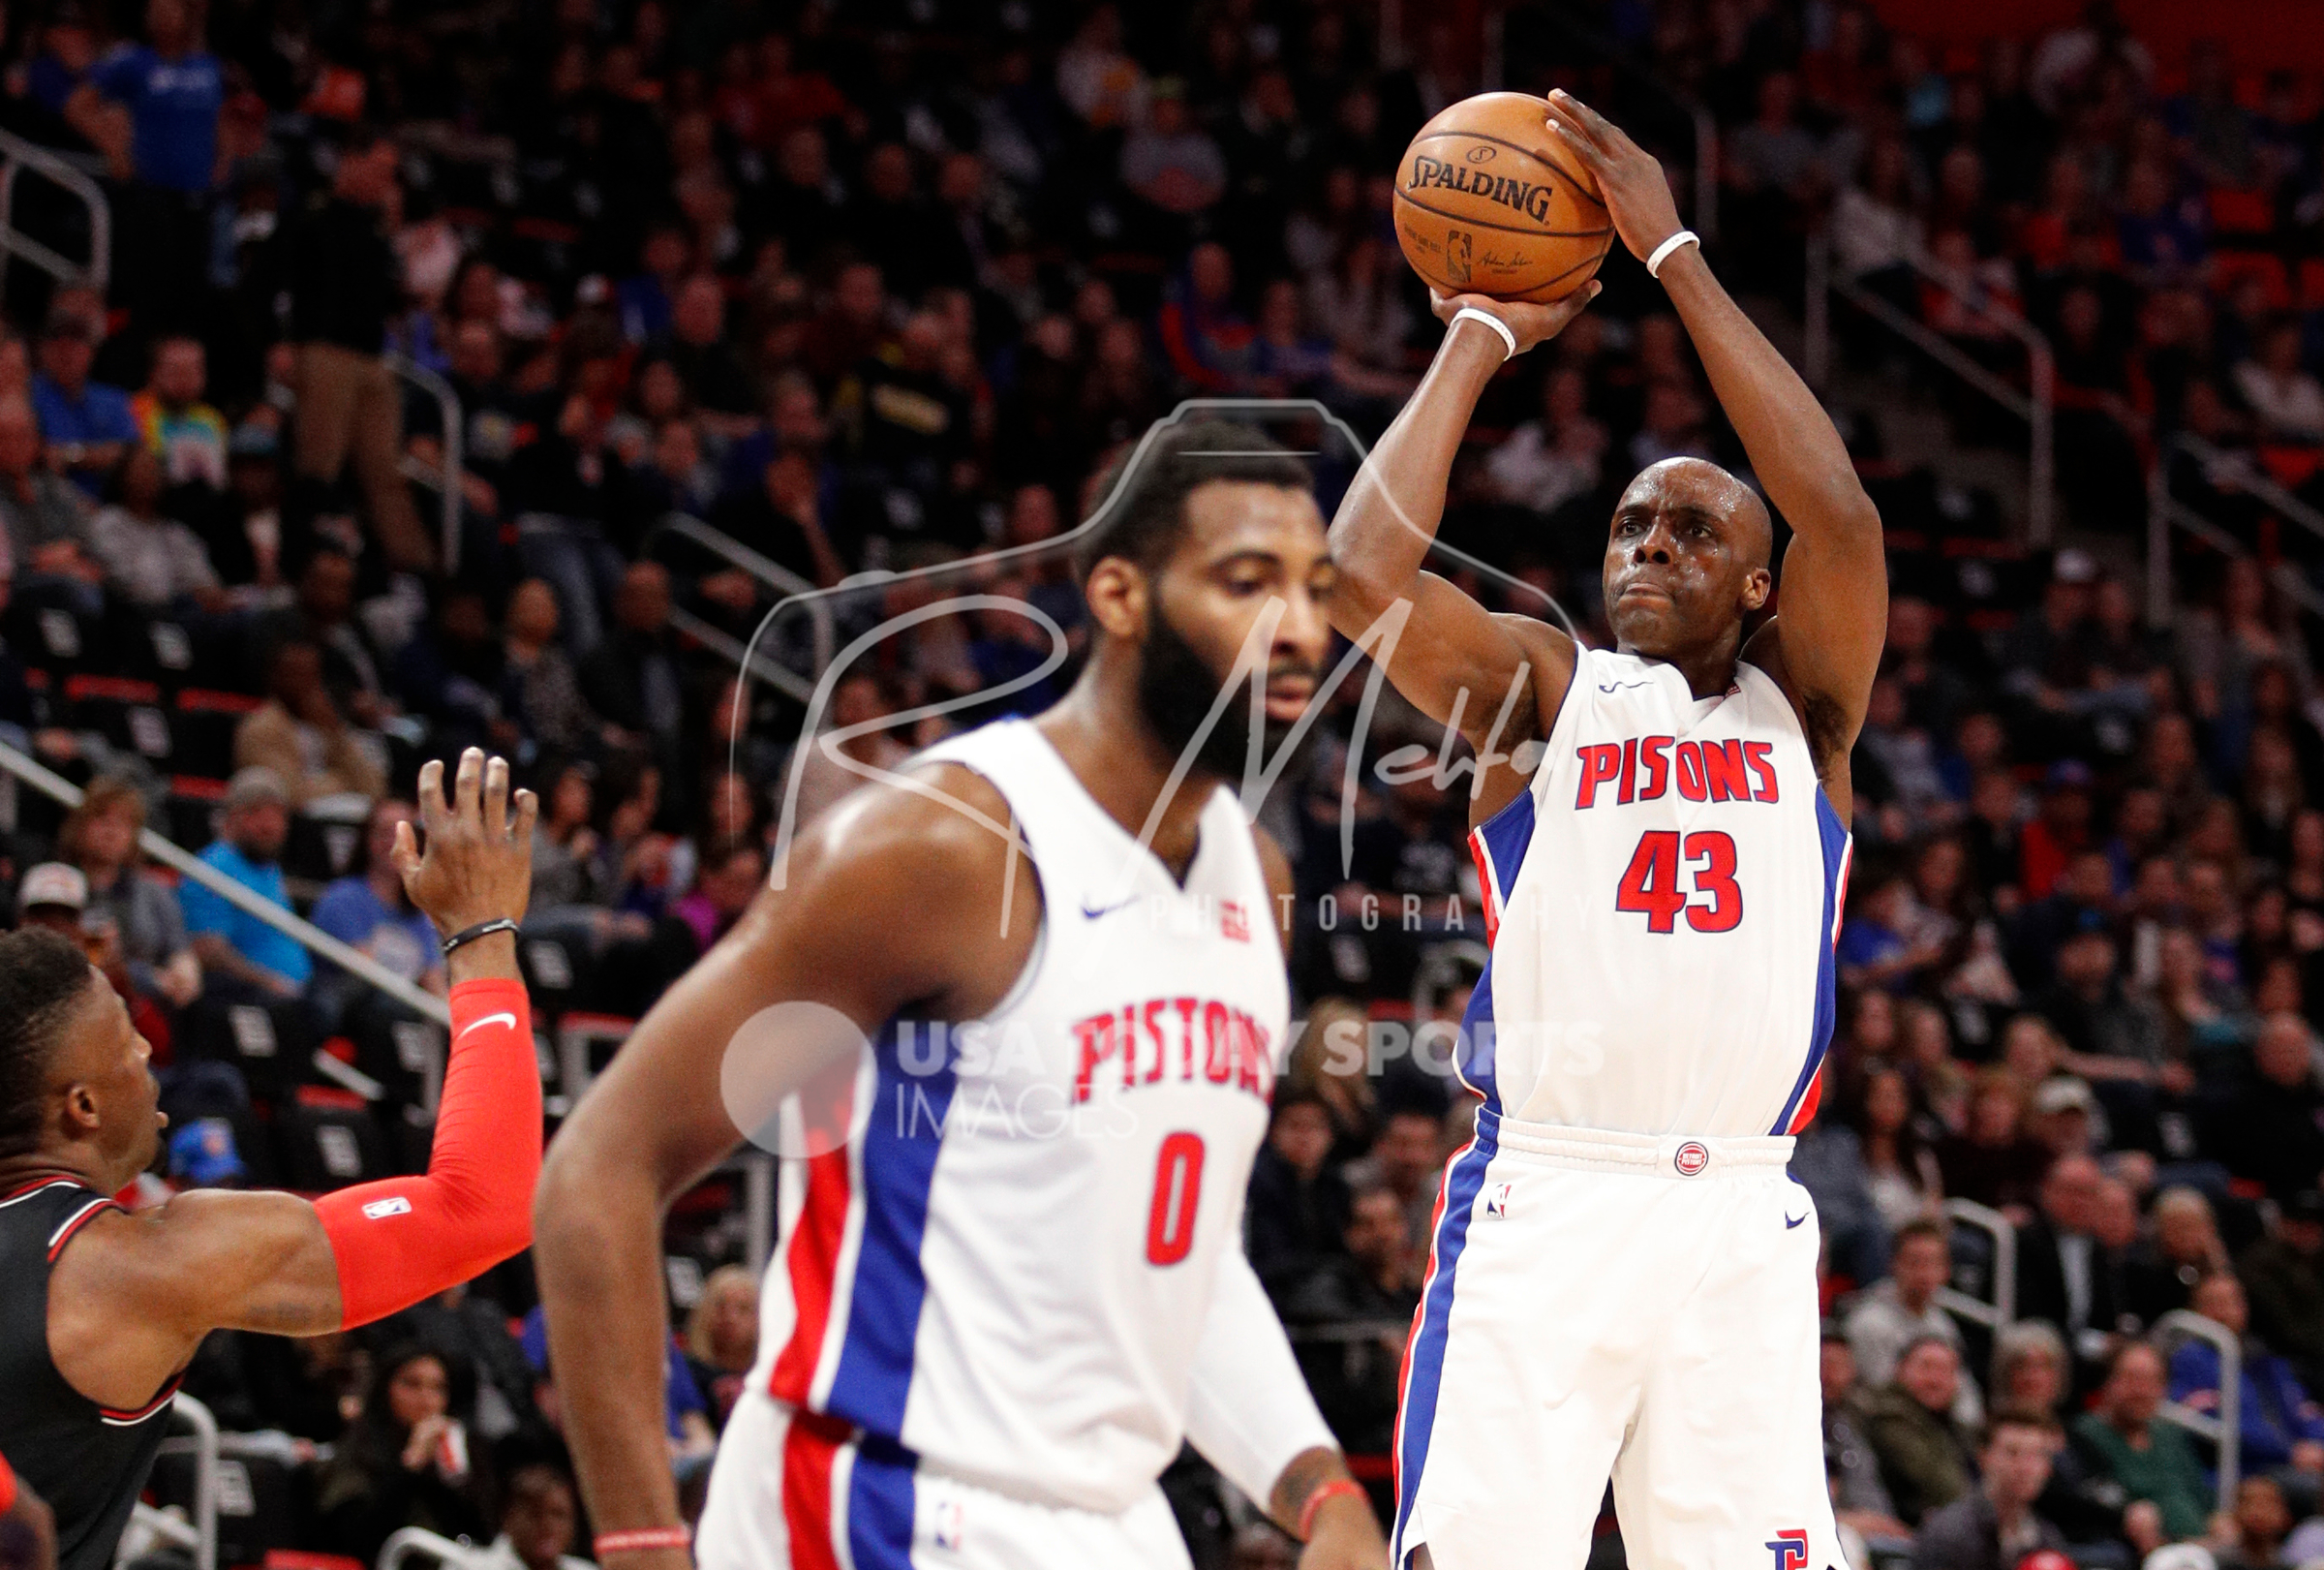 Mar 24, 2018; Detroit, MI, USA; Detroit Pistons forward Anthony Tolliver (43) takes a shot over Chicago Bulls forward David Nwaba (11) during the second quarter at Little Caesars Arena. Mandatory Credit: Raj Mehta-USA TODAY Sports